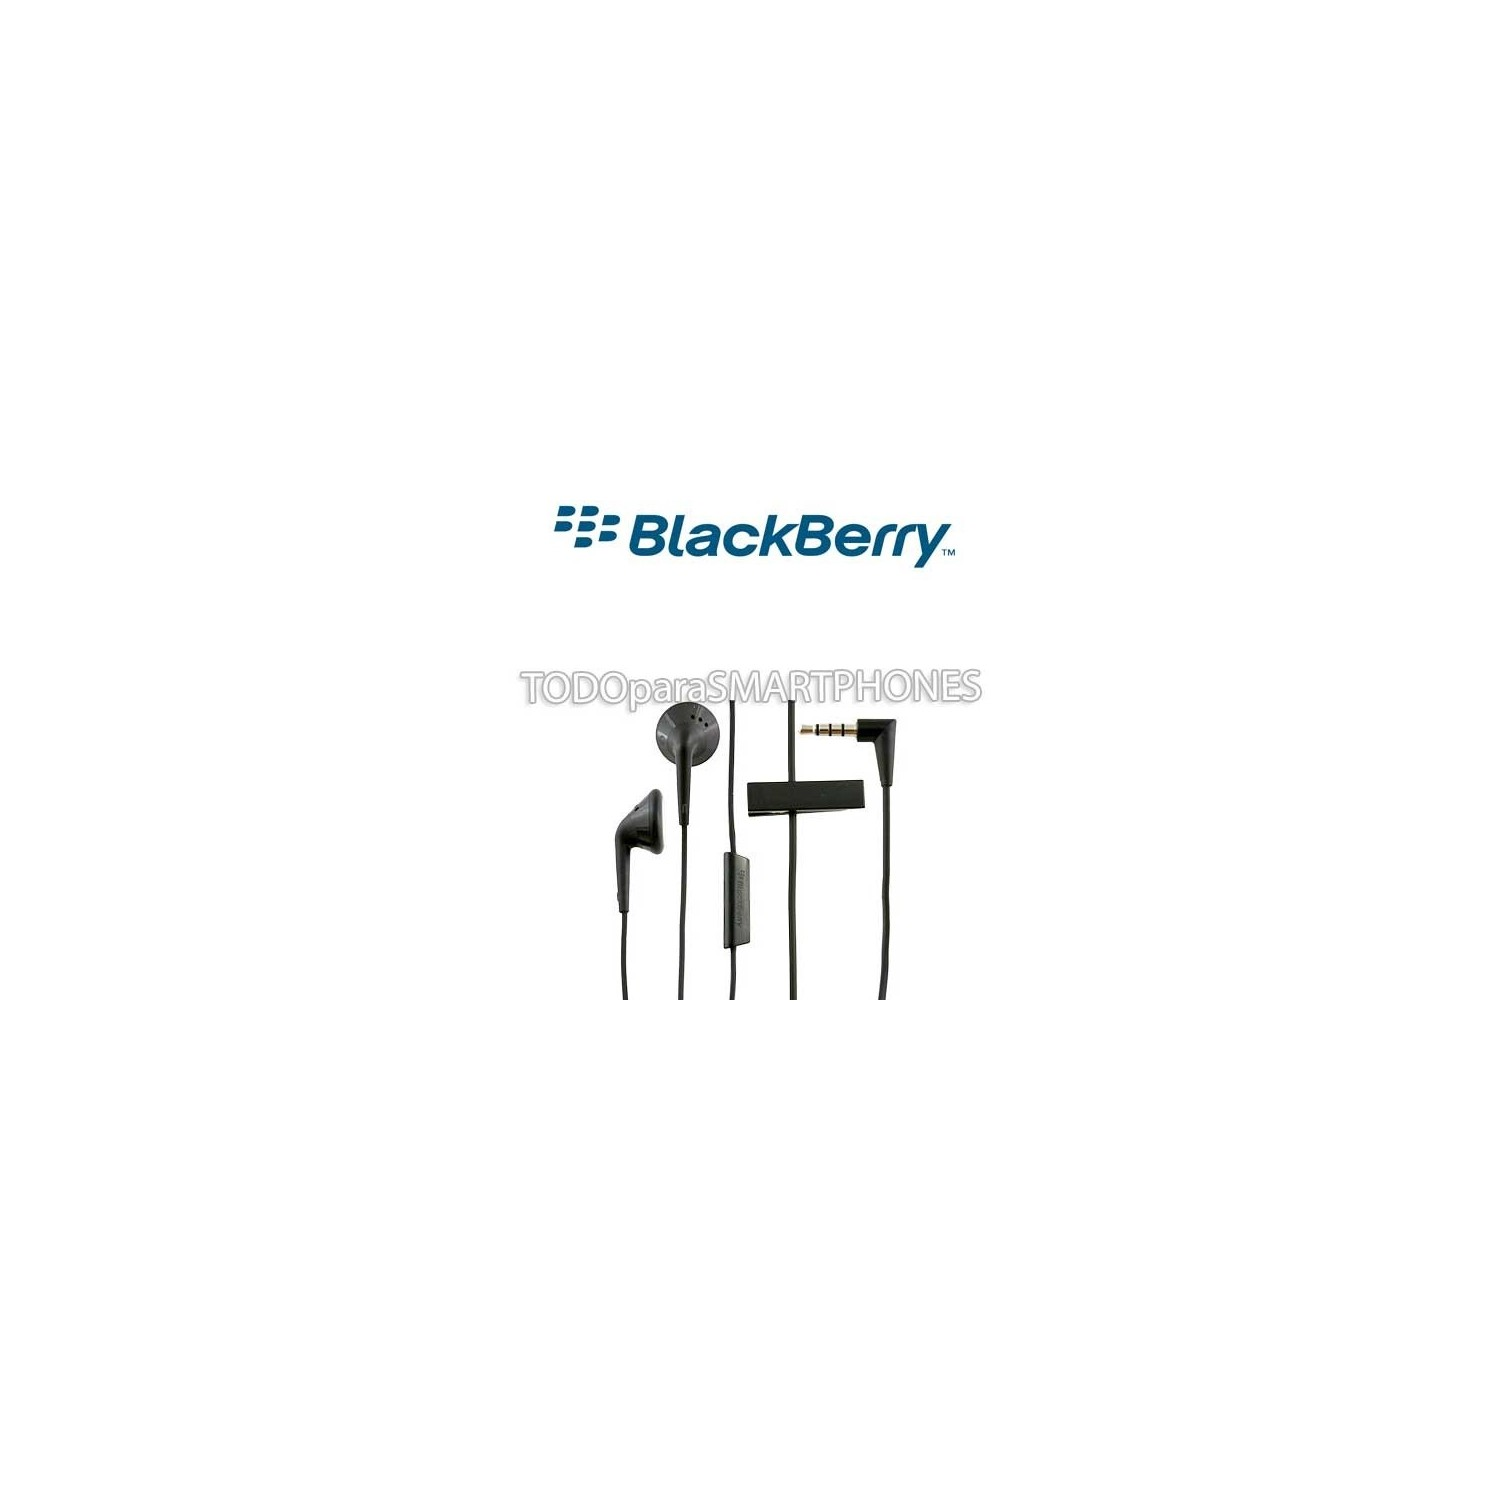 Manos Libres z Stereo Universal 3.5mm HDW-24529-001